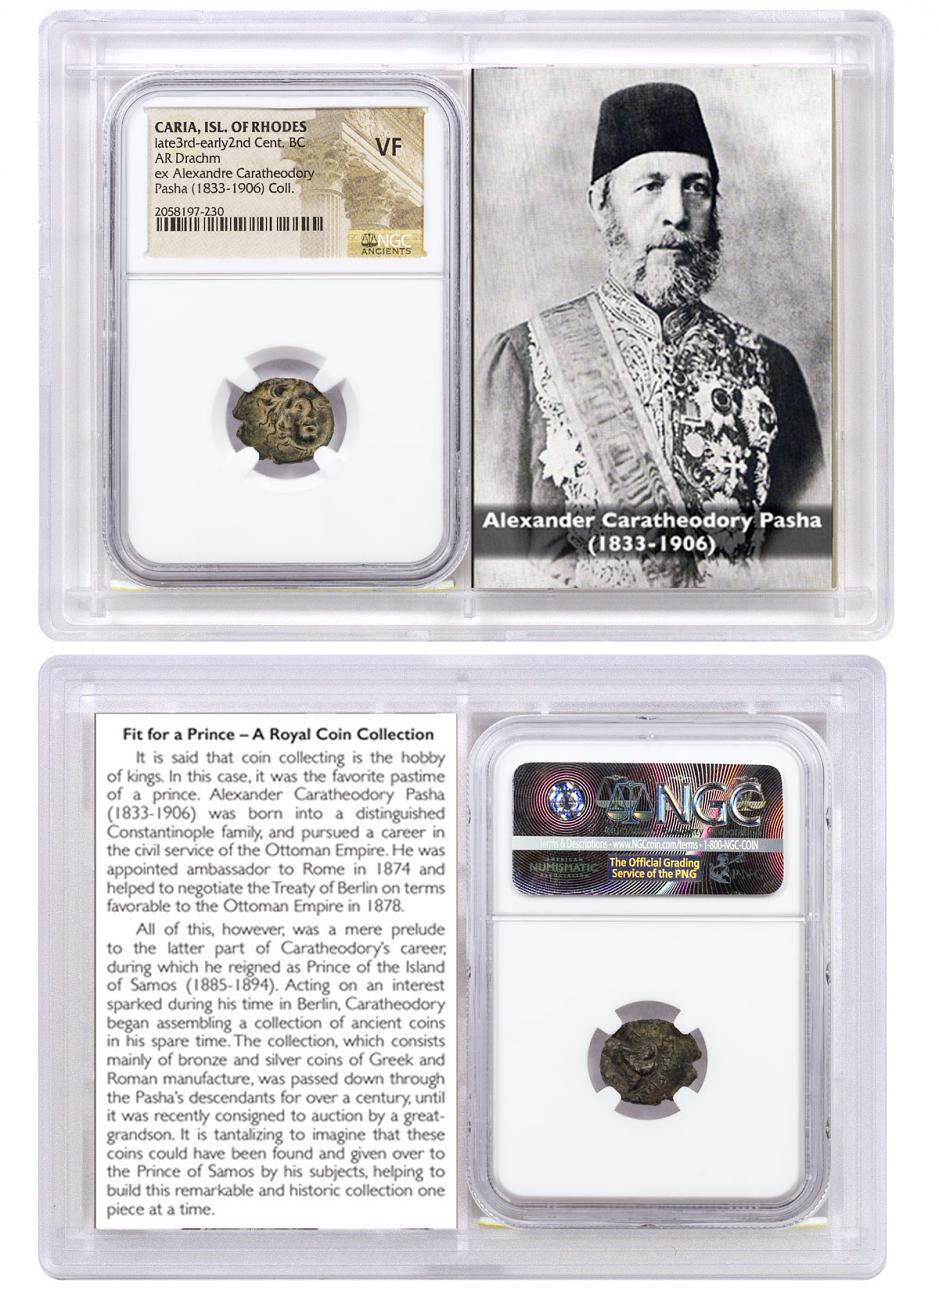 Caria, Isl. of Rhodes Silver Drachm (Late 3rd-Early 2nd Centuries BC) - ex. Alexander Pasha, Prince of Samos NGC VF (Story Vault)